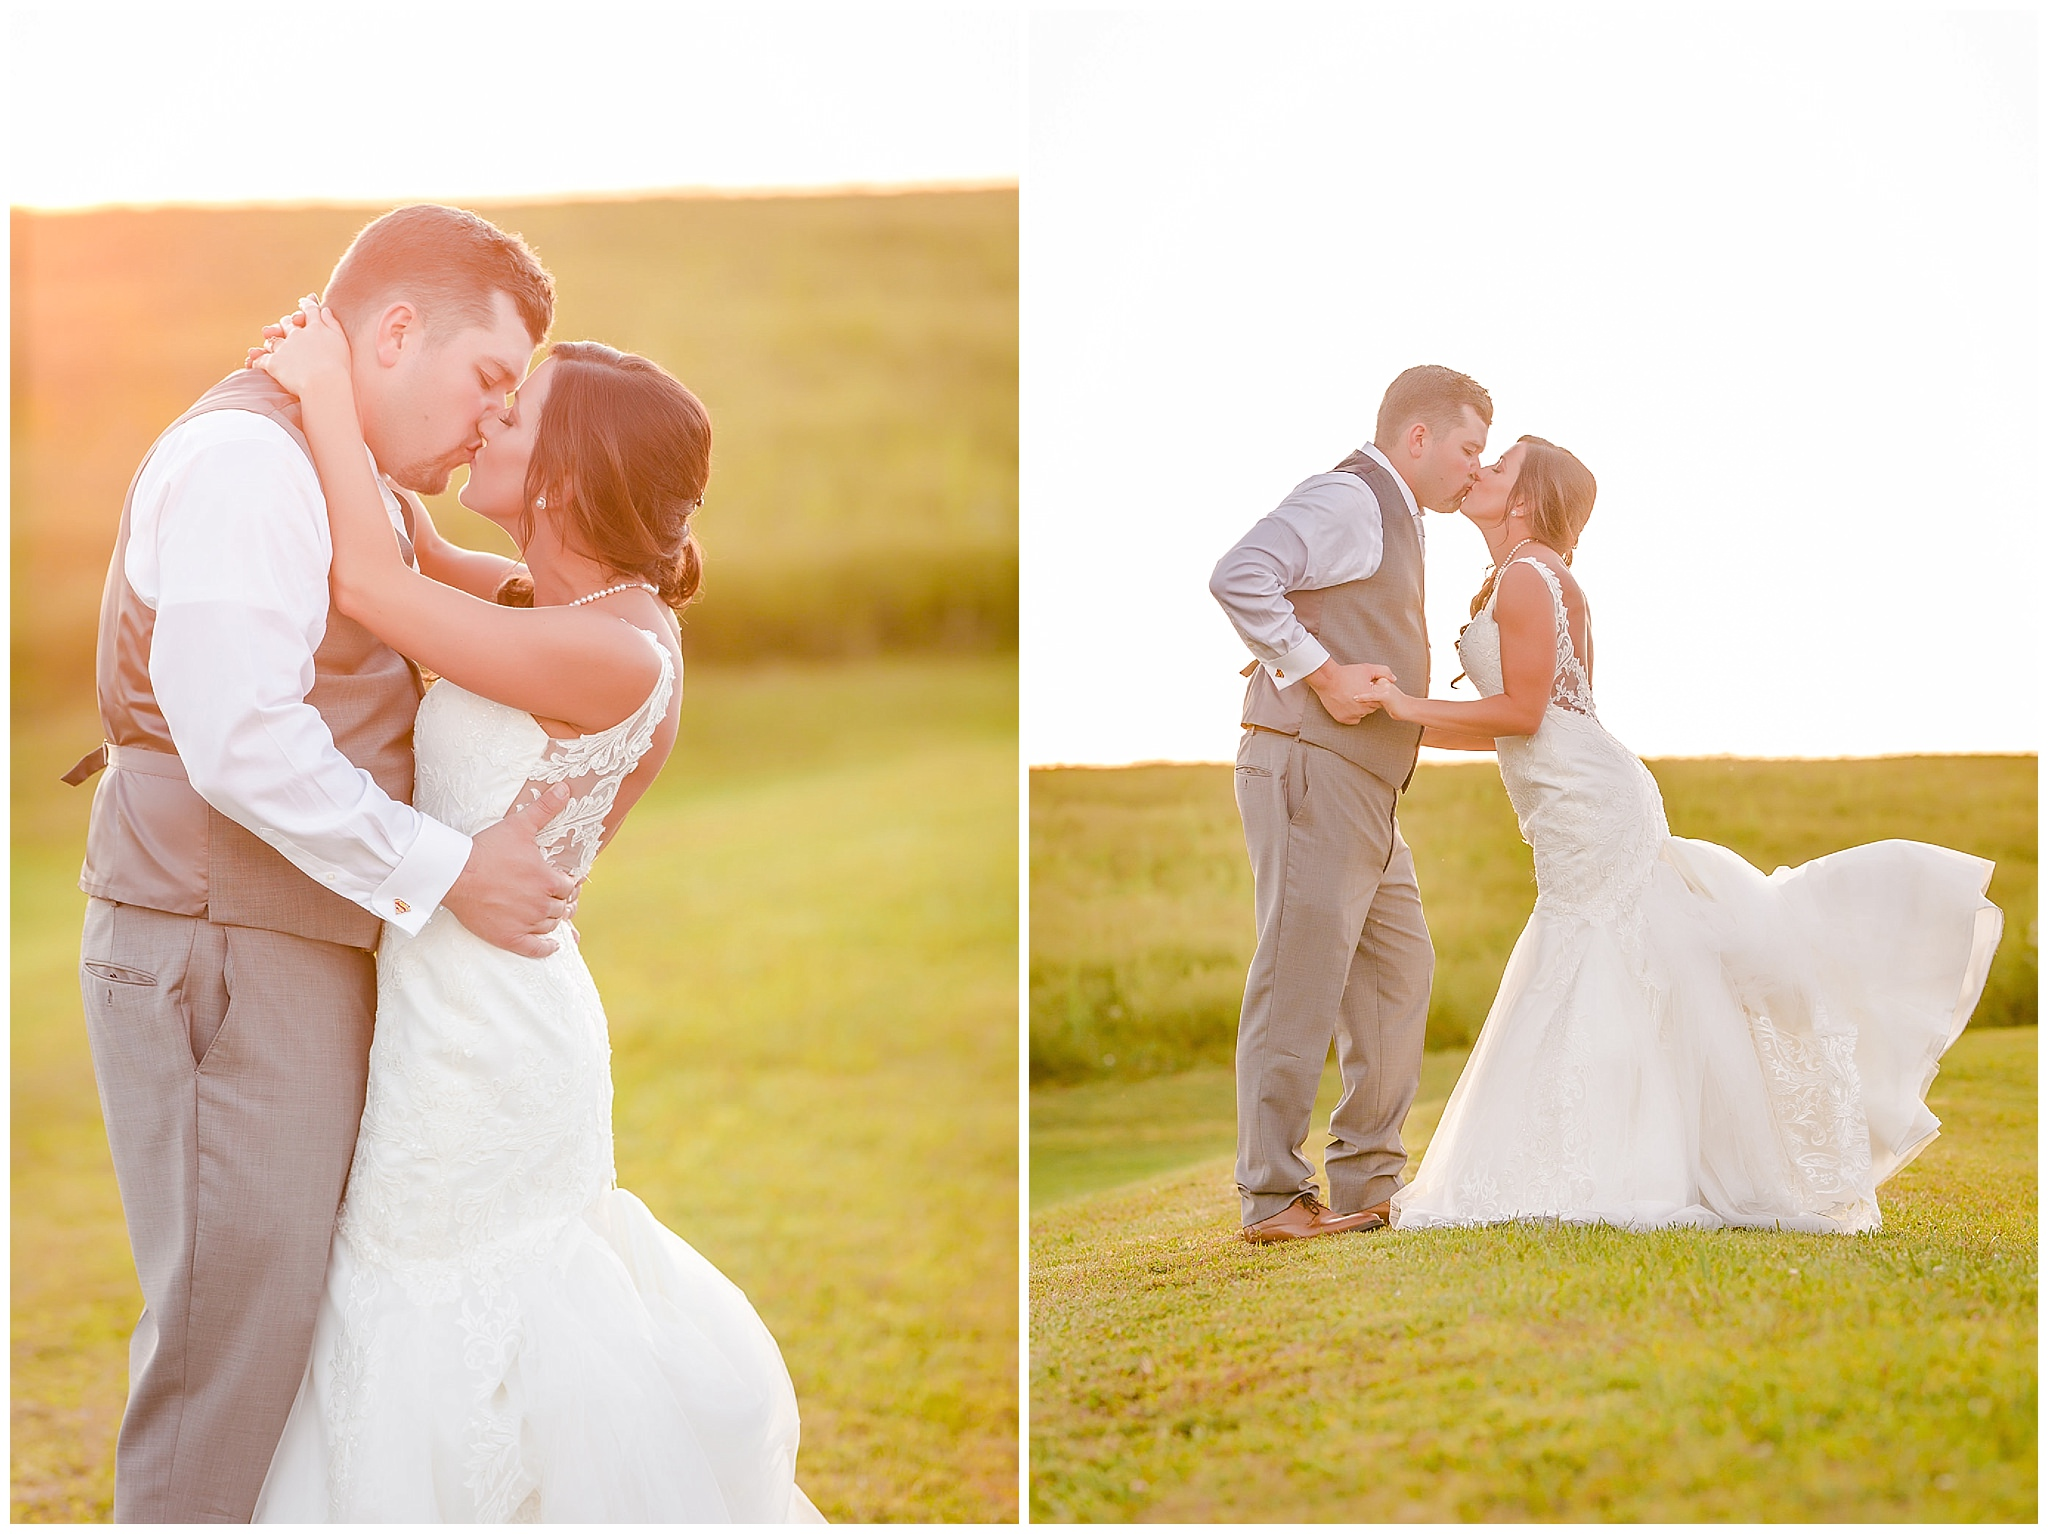 Bride and groom kiss in the sunset at their White Barn wedding